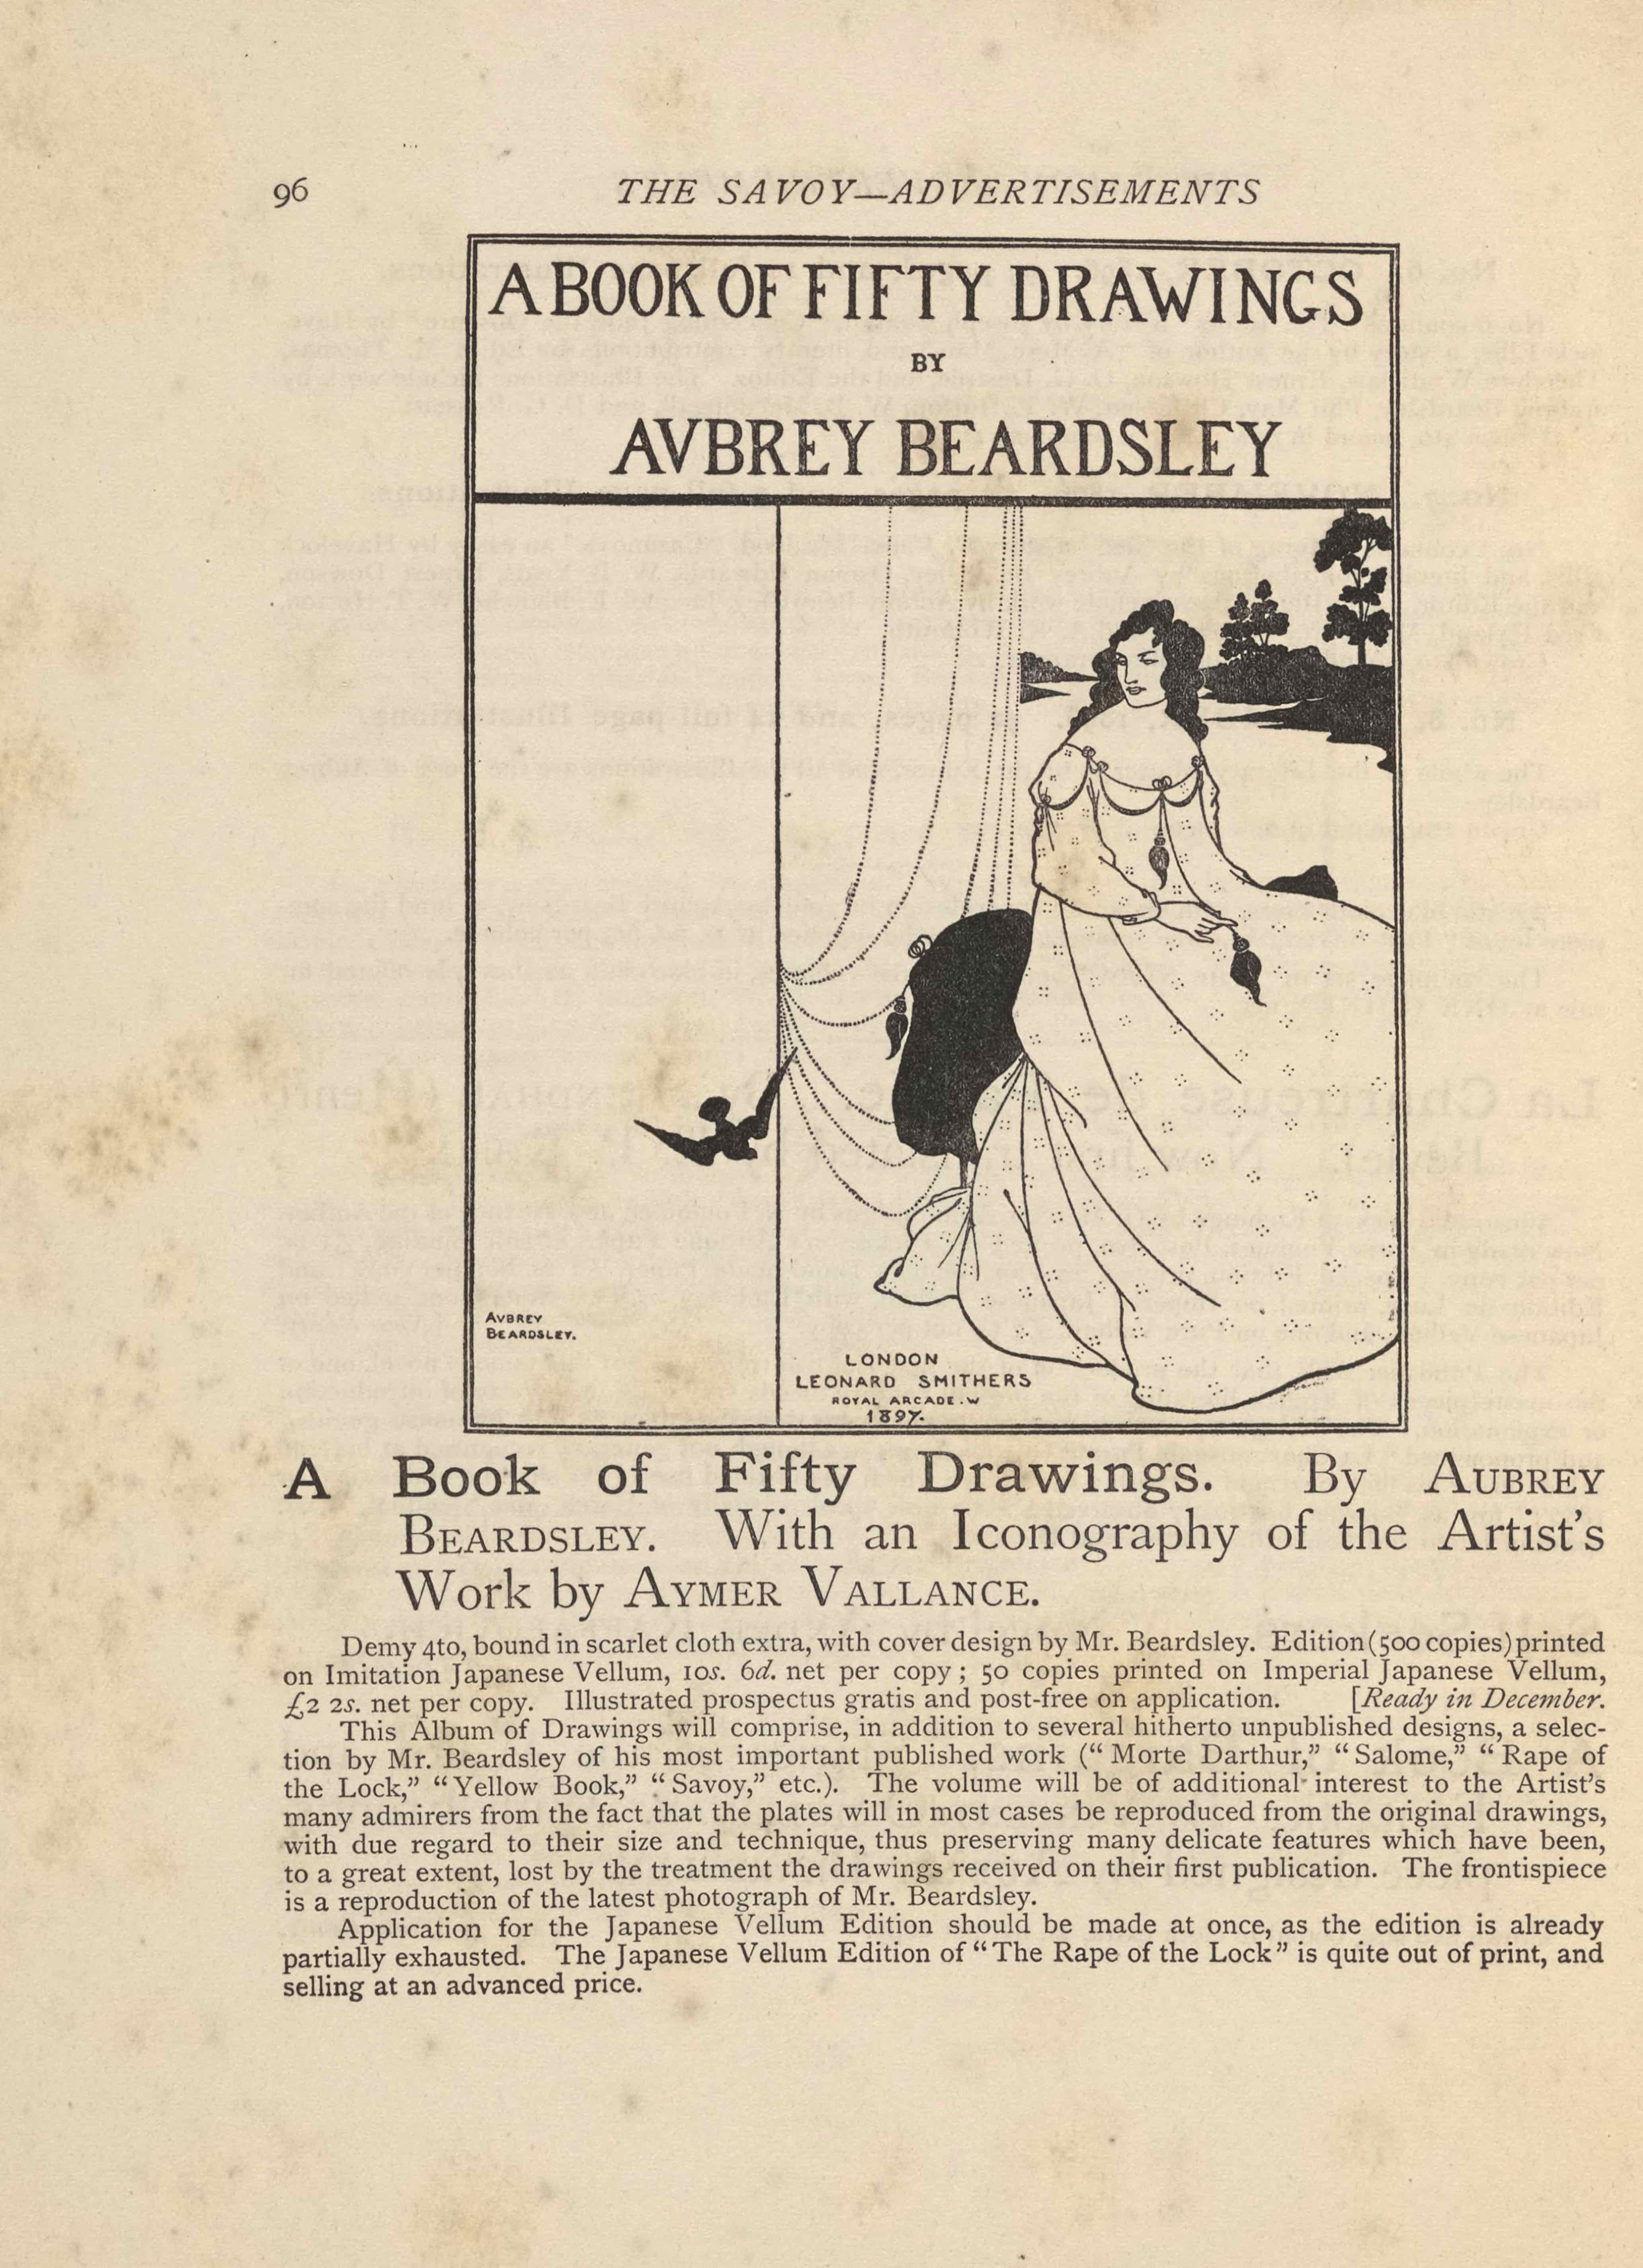 """The framed illustration, in portrait orientation, uses a line-block reproduction of Beardsley's pen-and-ink design. The illustration is an advertisement for a book of 50 drawings by Aubrey Beardsley. The image is divided into three sections. The first section is a banner across the top of three lines of text. The first line reads, """"A BOOK OF FIFTY DRAWINGS"""" [caps]. The next line reads, """"BY"""" [caps] in a smaller font. The third and final line is in the same size font as the first line and reads, """"Aubrey Beardsley"""" [caps]. The second section of the image is demarcated vertically. It takes up the left third of the page. It is blank save for the black silhouette of a bird (possibly a swallow) in descending flight. The edge of the bird's wing crosses over into the third and final section of the image which takes up the rightmost two thirds of the illustration. This section features a dark haired woman in a white dress sitting on a black chair. Her body is facing the right side of the page but her head is turned to the left. White curtains fall behind her to the left. Behind her on the right is a landscape with a river, the far bank of which is black with the silhouettes of three trees visible."""